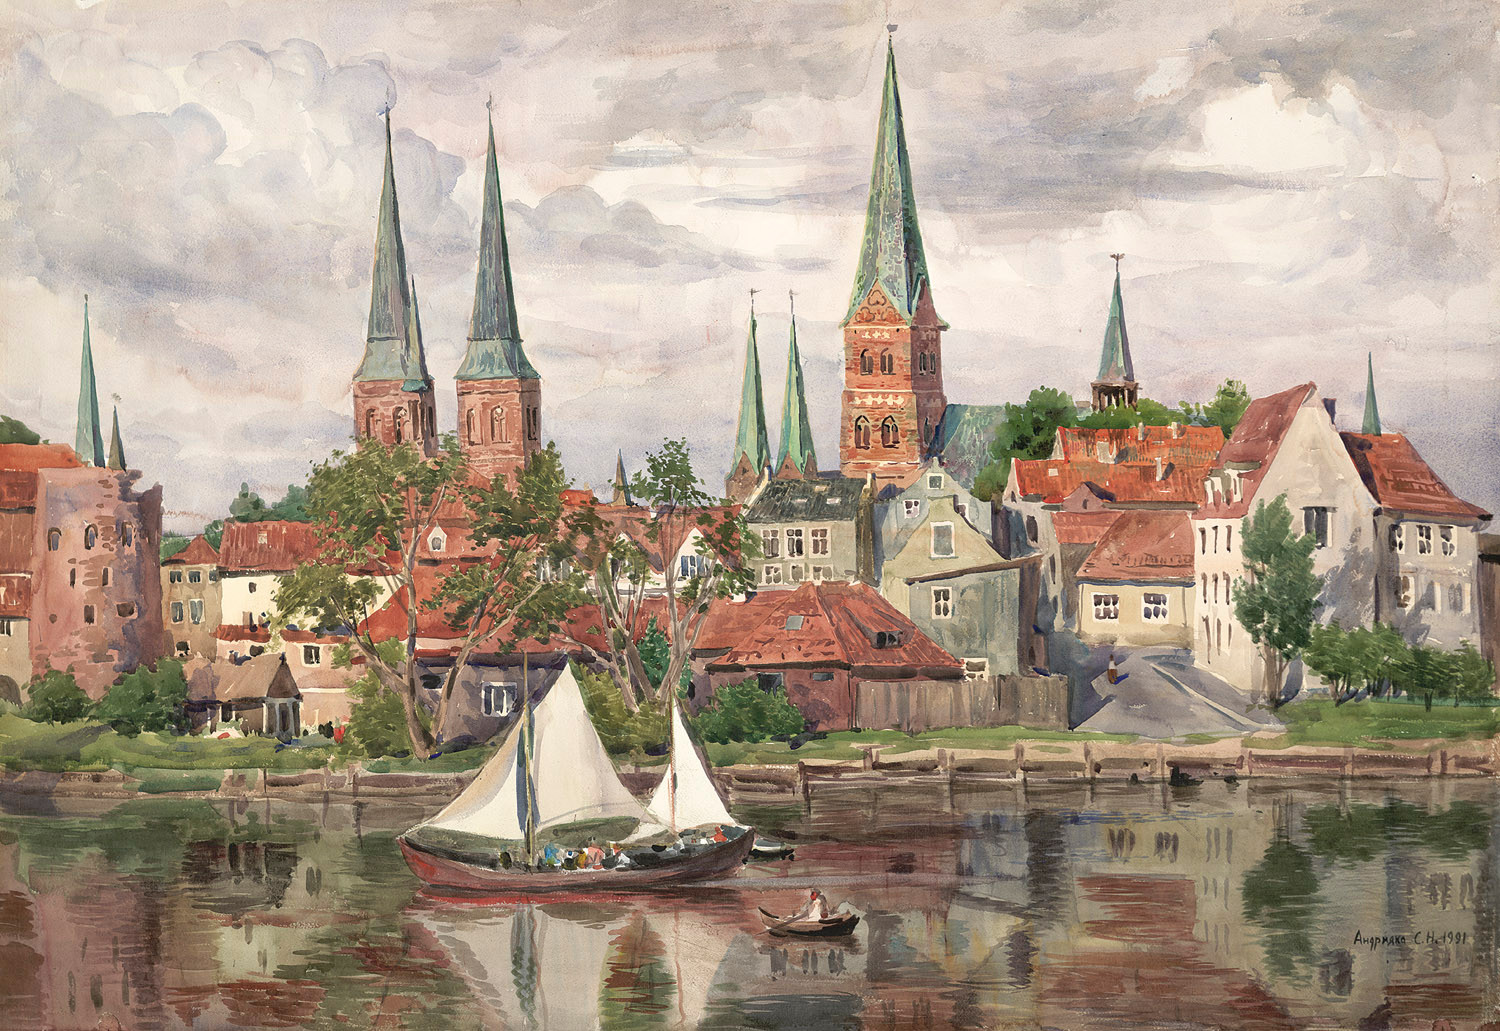 The town of Lübeck, 1991